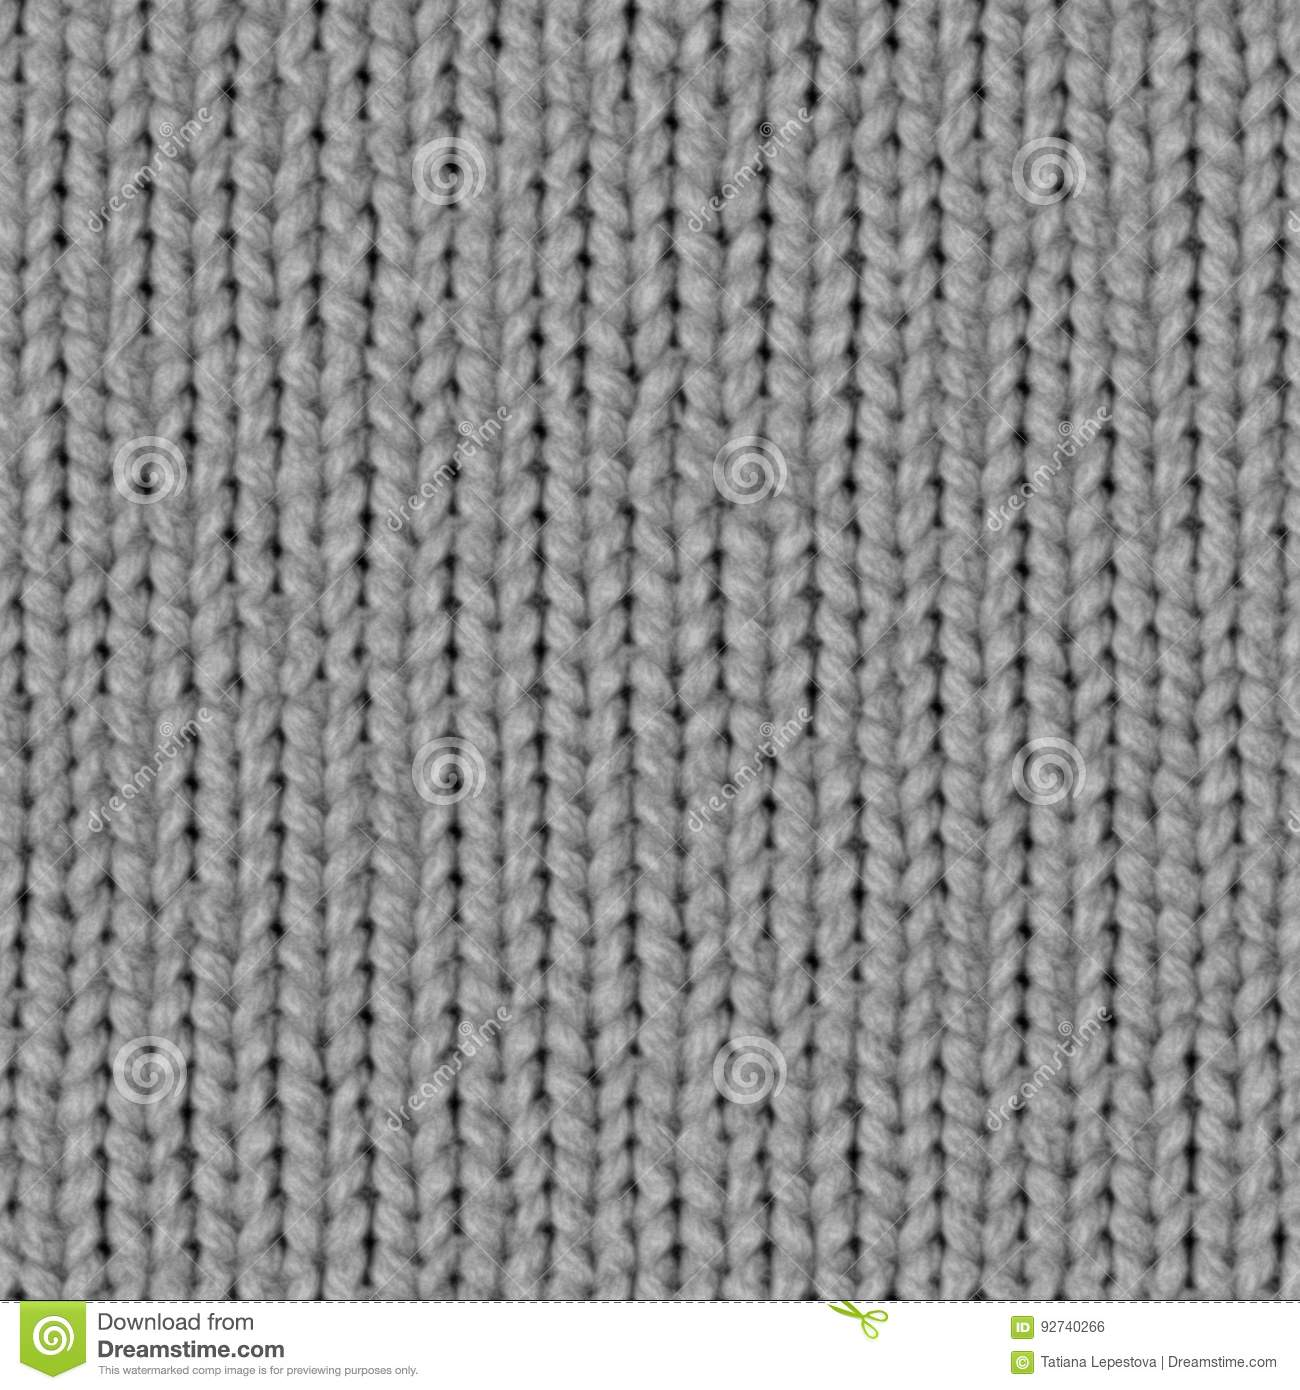 Fabric Texture 7 Displacement Seamless Map Knitting Stock Photo Image Of Sweater Texture 92740266